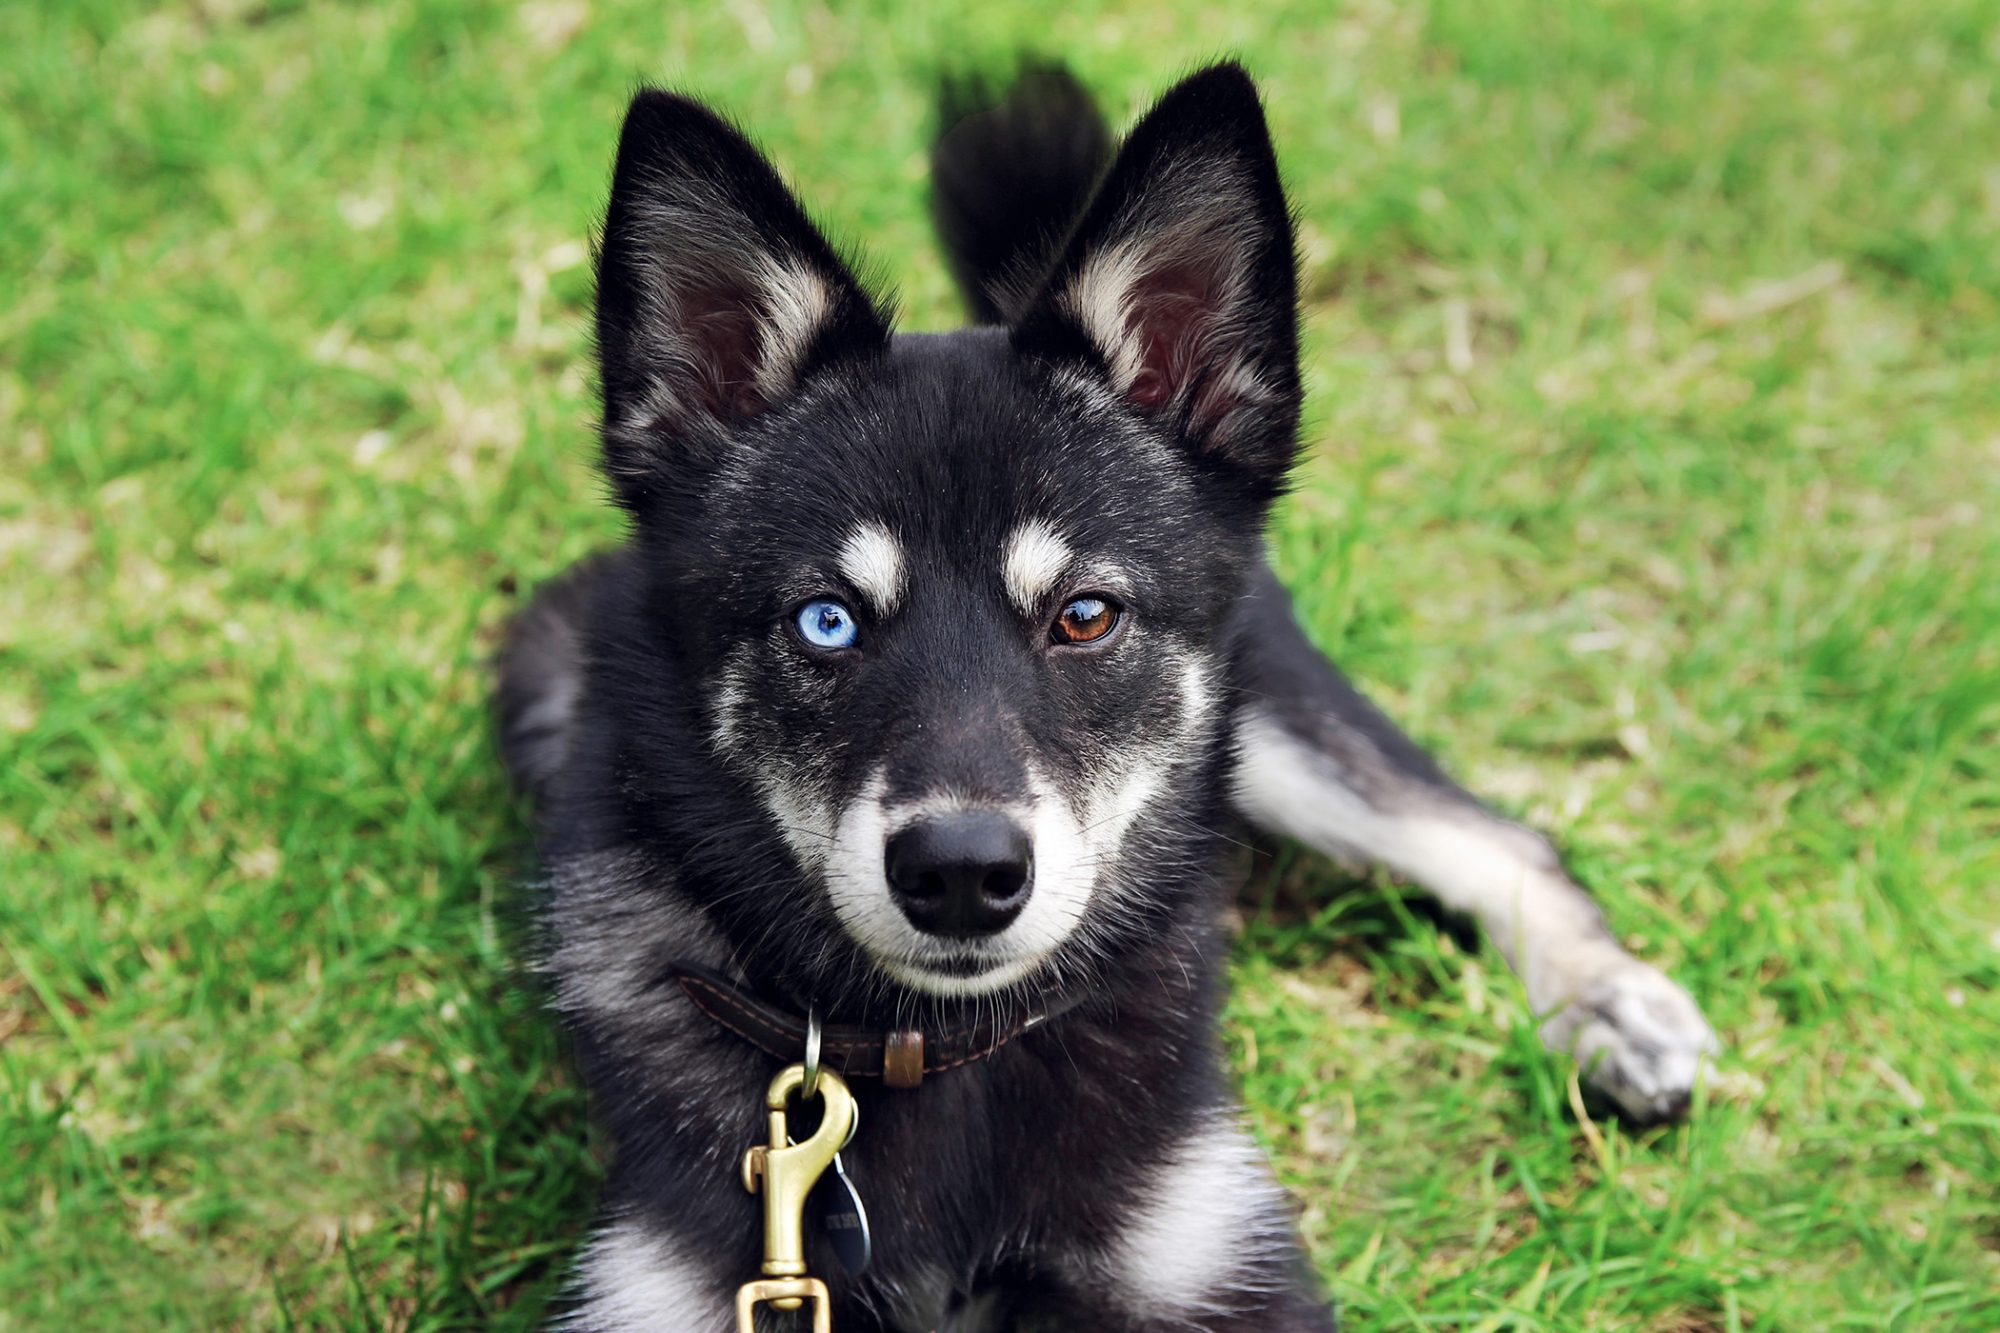 Black and white Alaskan Klee kai with blue eye and brown eye lays on grass